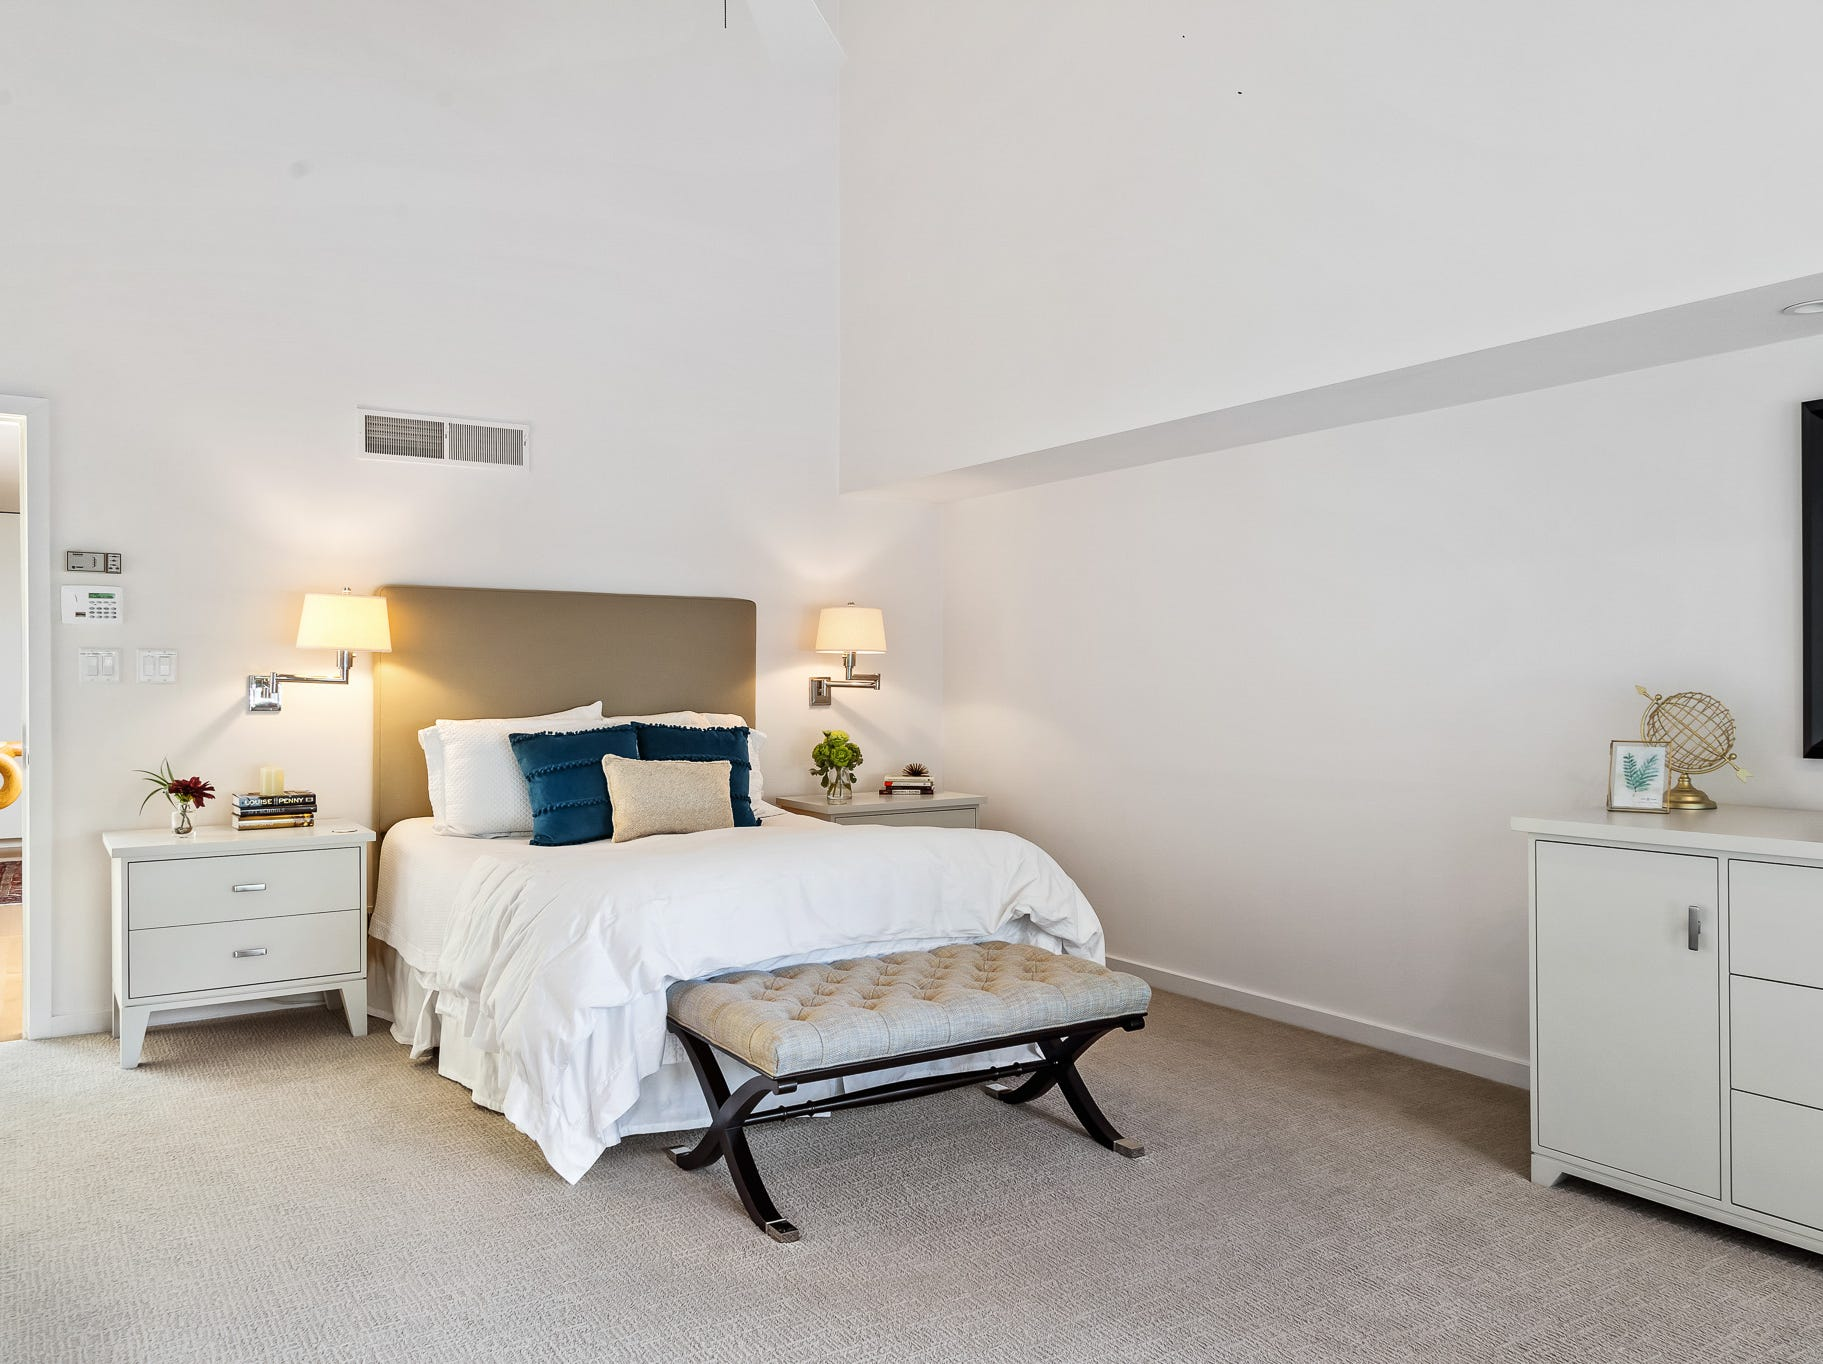 The lower level at 3611 Centerville Road in Greenville includes guest bedrooms.